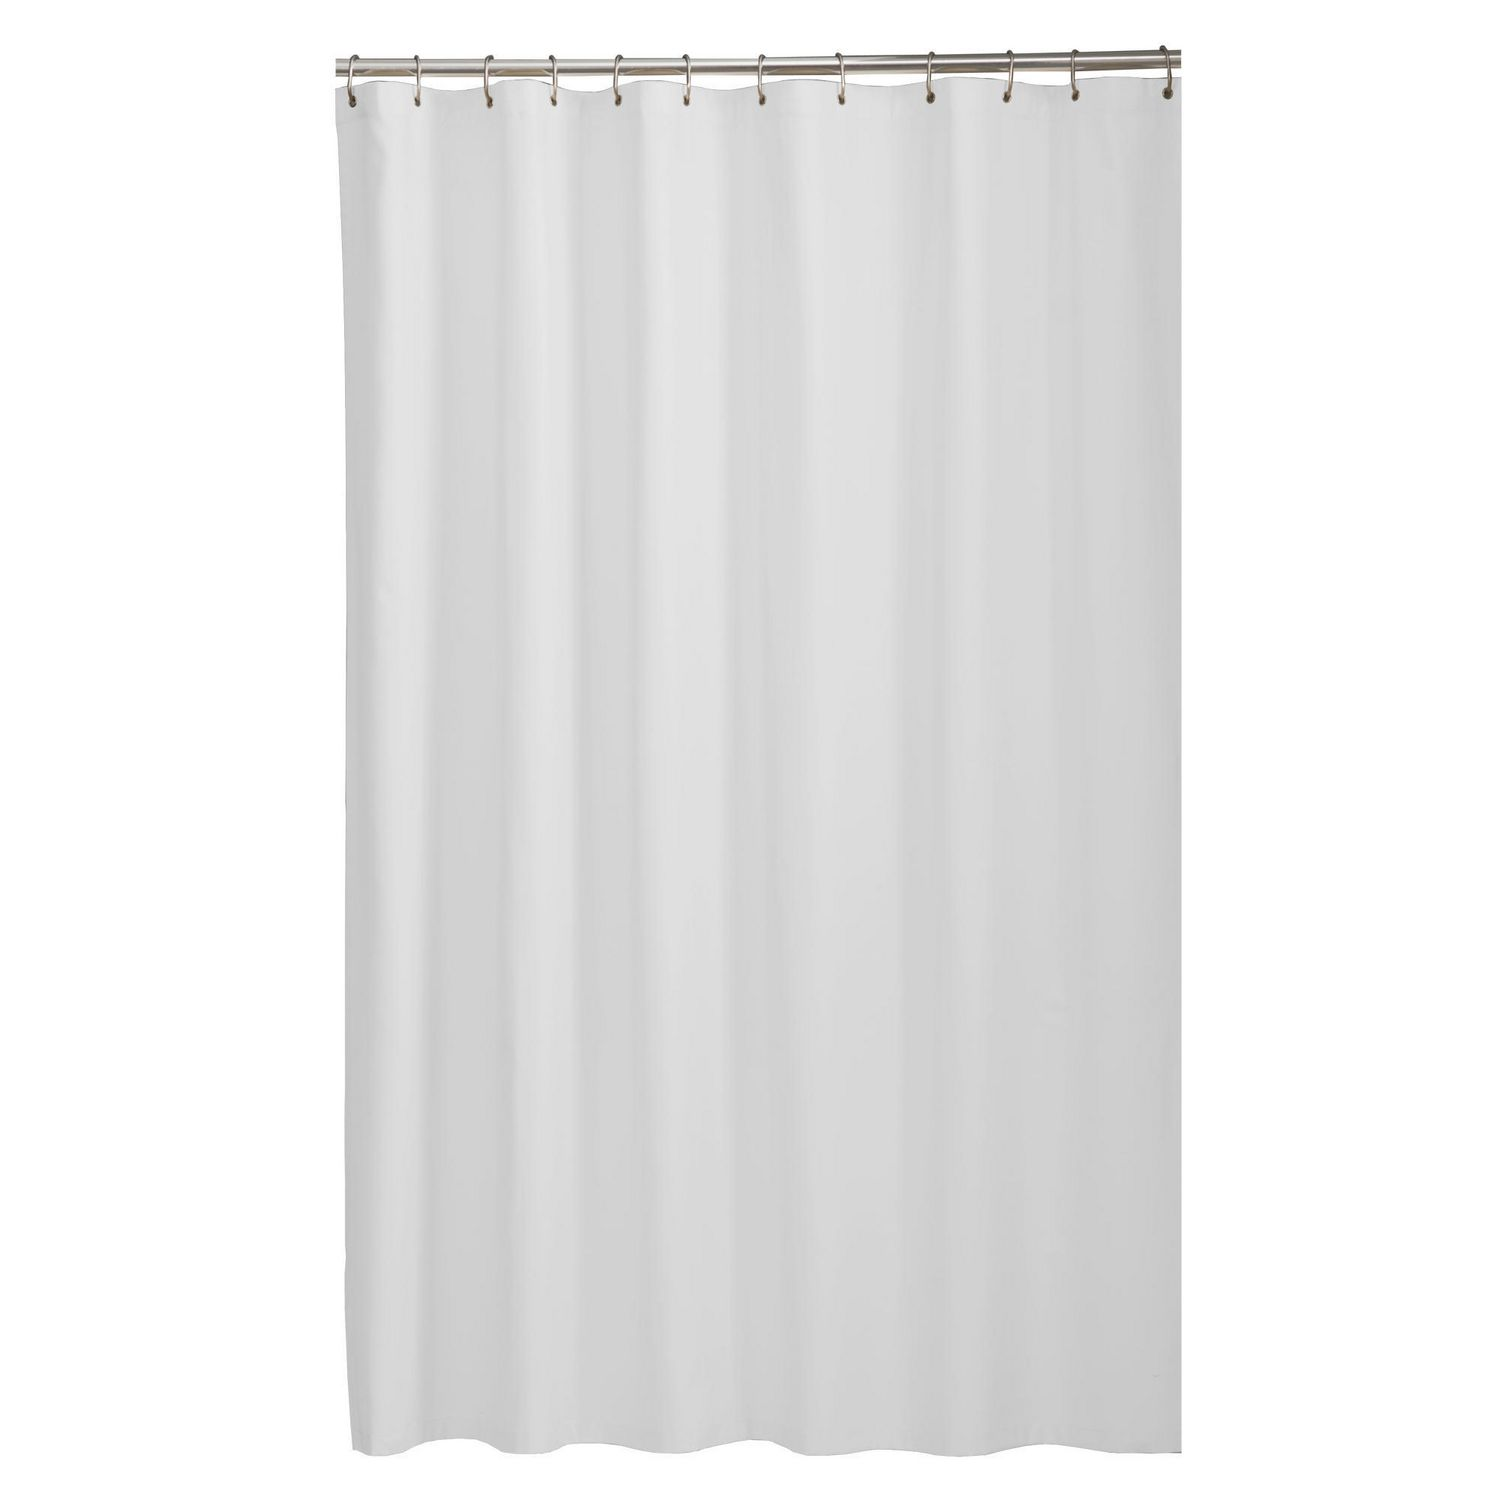 modern varela anthropologie shower b hei boho unique curtain curtains bathroom